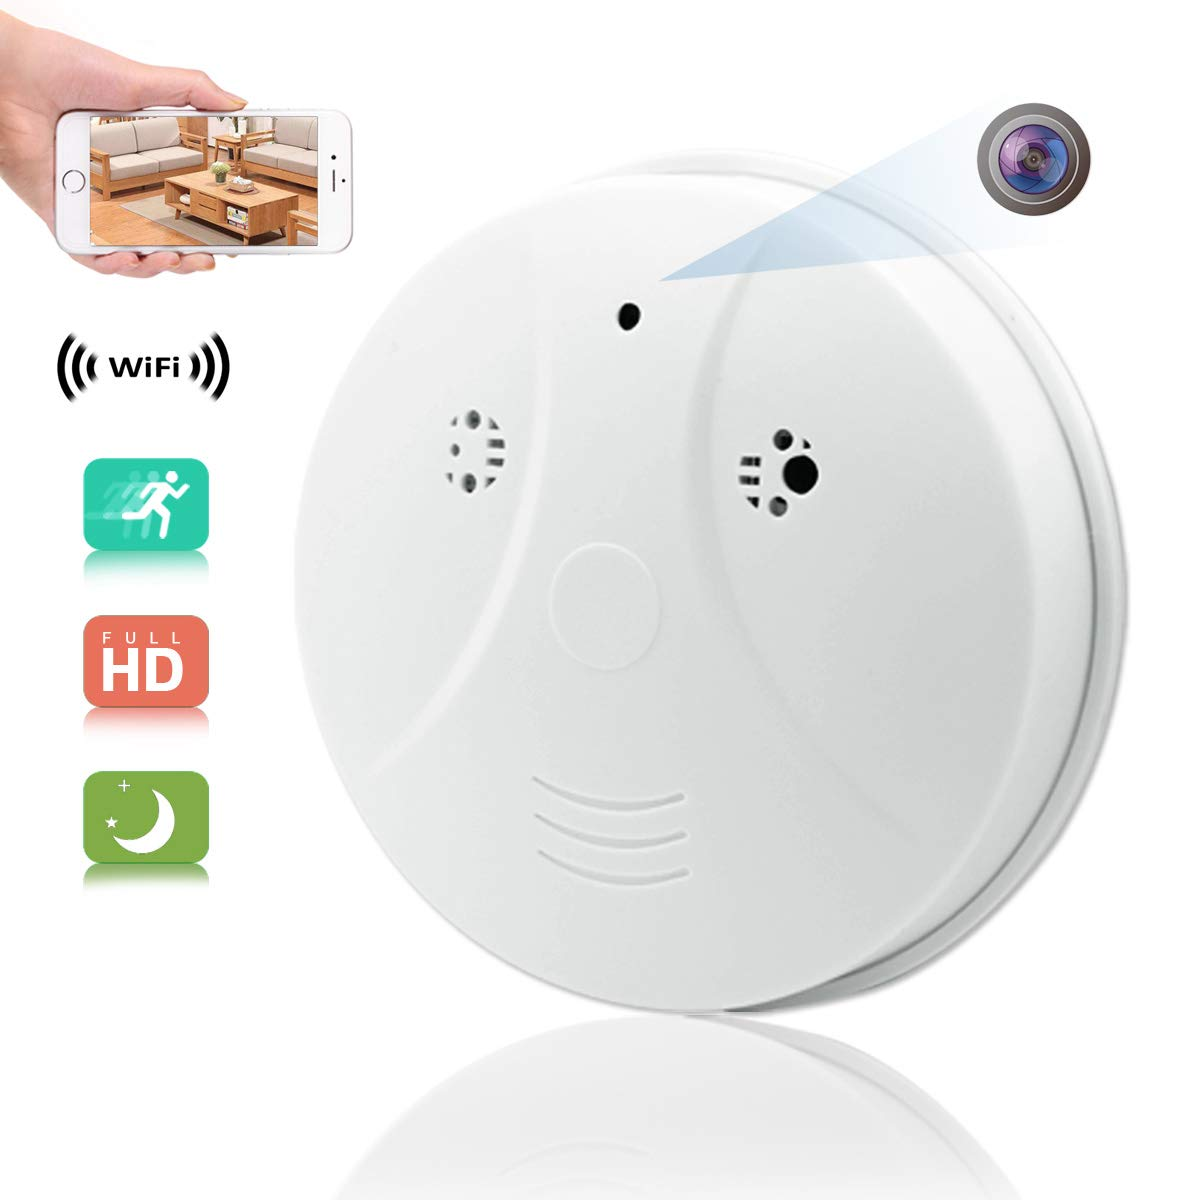 Winsper HD 1080P WiFi Hidden Spy Camera Smoke Detector, Mobile Phone Remote Monitoring Motion Detection Mini Video Recorder for Home Office Store